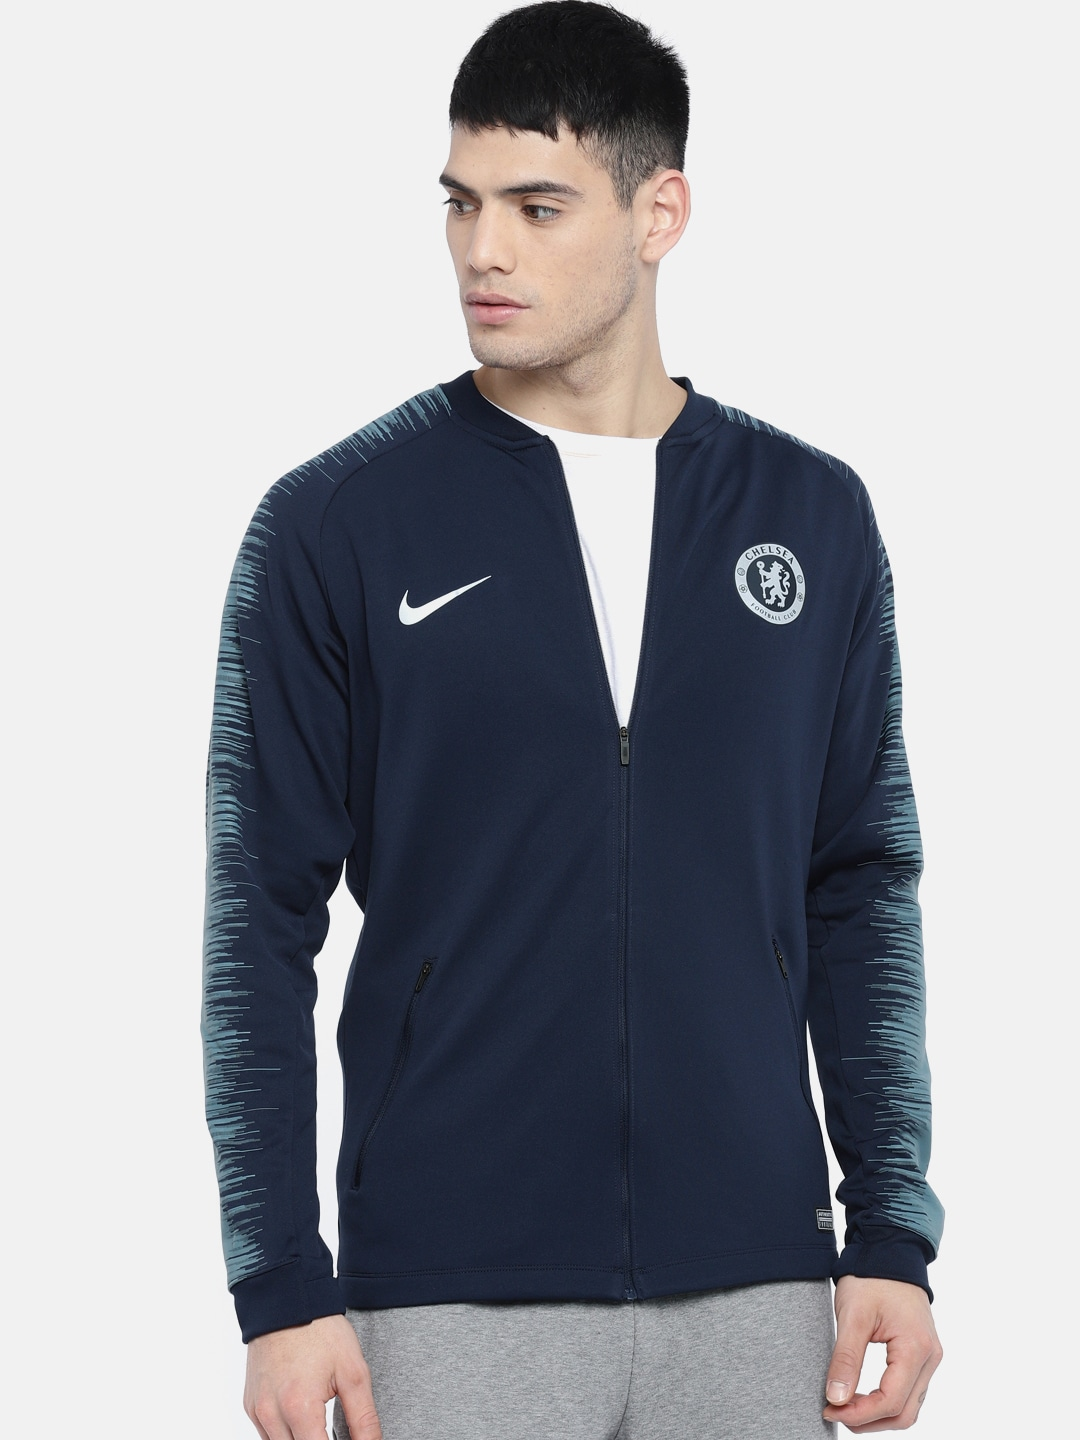 Men s Nike Jackets - Buy Nike Jackets for Men Online in India 0f990a516